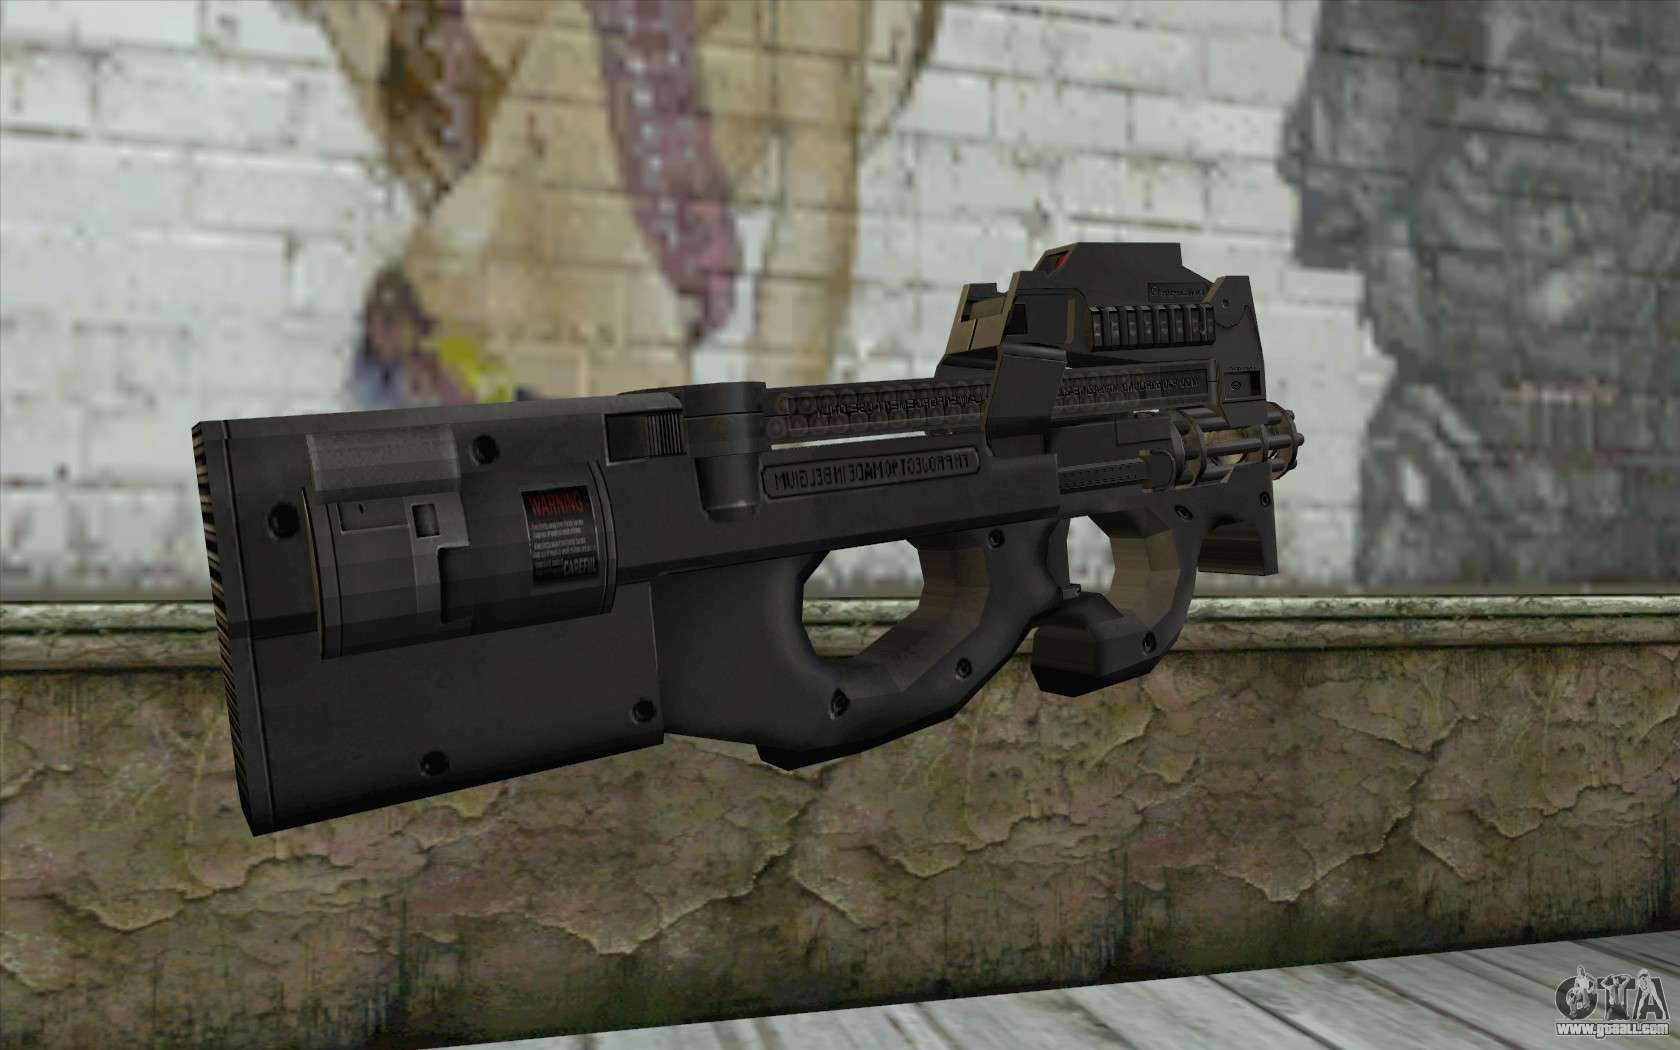 arma 3 sniper screenshots with 43704 Fn P90 Mkii on Sniper Elite 3 Review as well Arma 3 Wallpaper Hd furthermore Call Of Duty Infinite Warfare Ganha Novas Imagens 42615 furthermore Dayz Standalone Wallpapers besides 43704 Fn P90 Mkii.